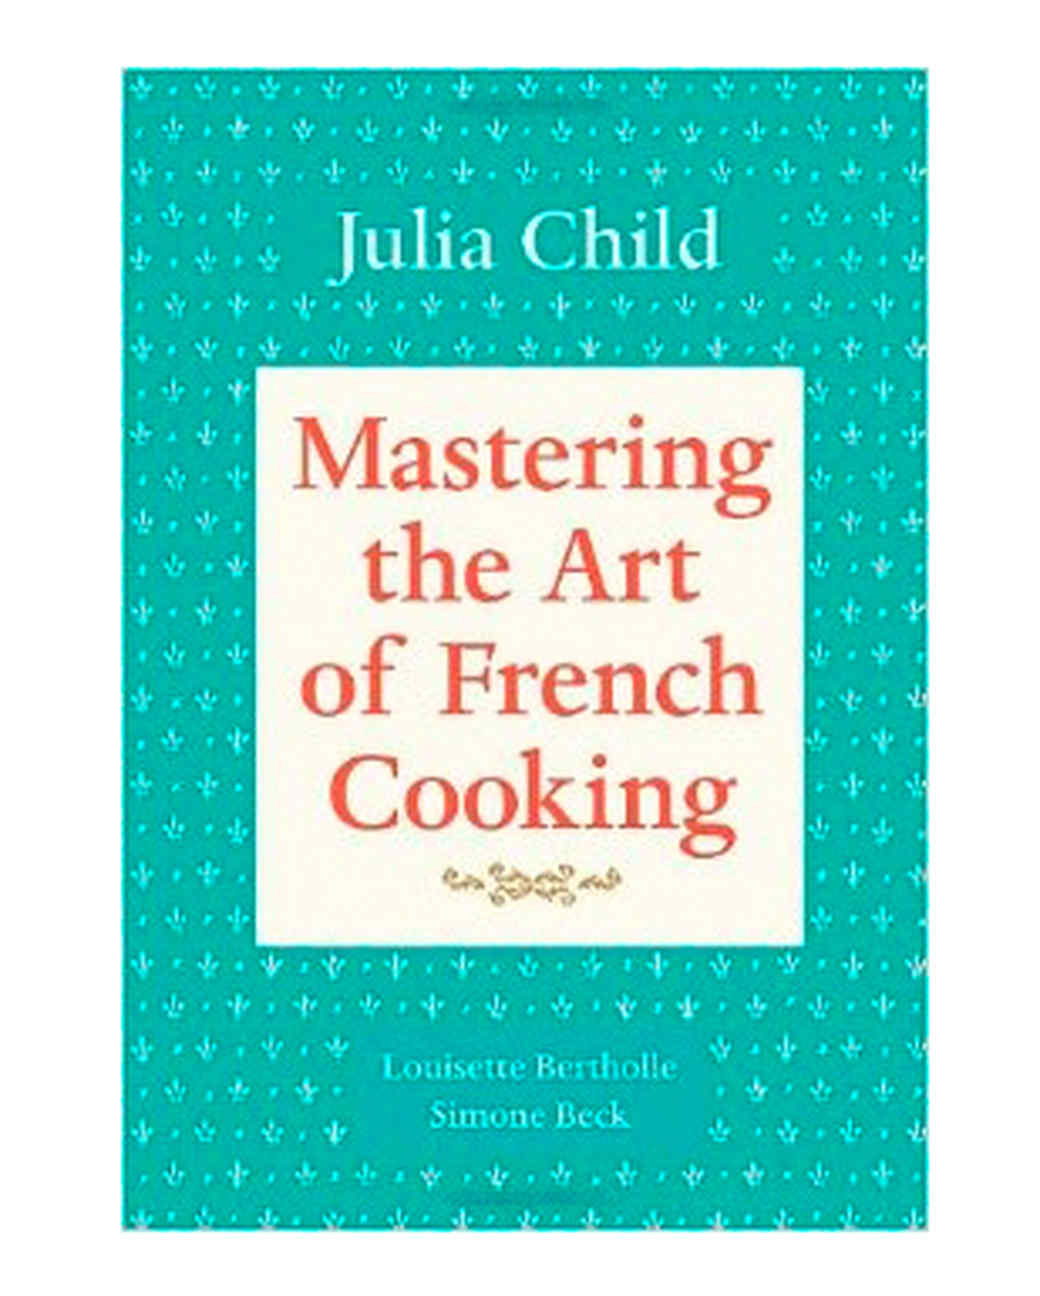 mscookbook-content-frenchcooking-0922.jpg